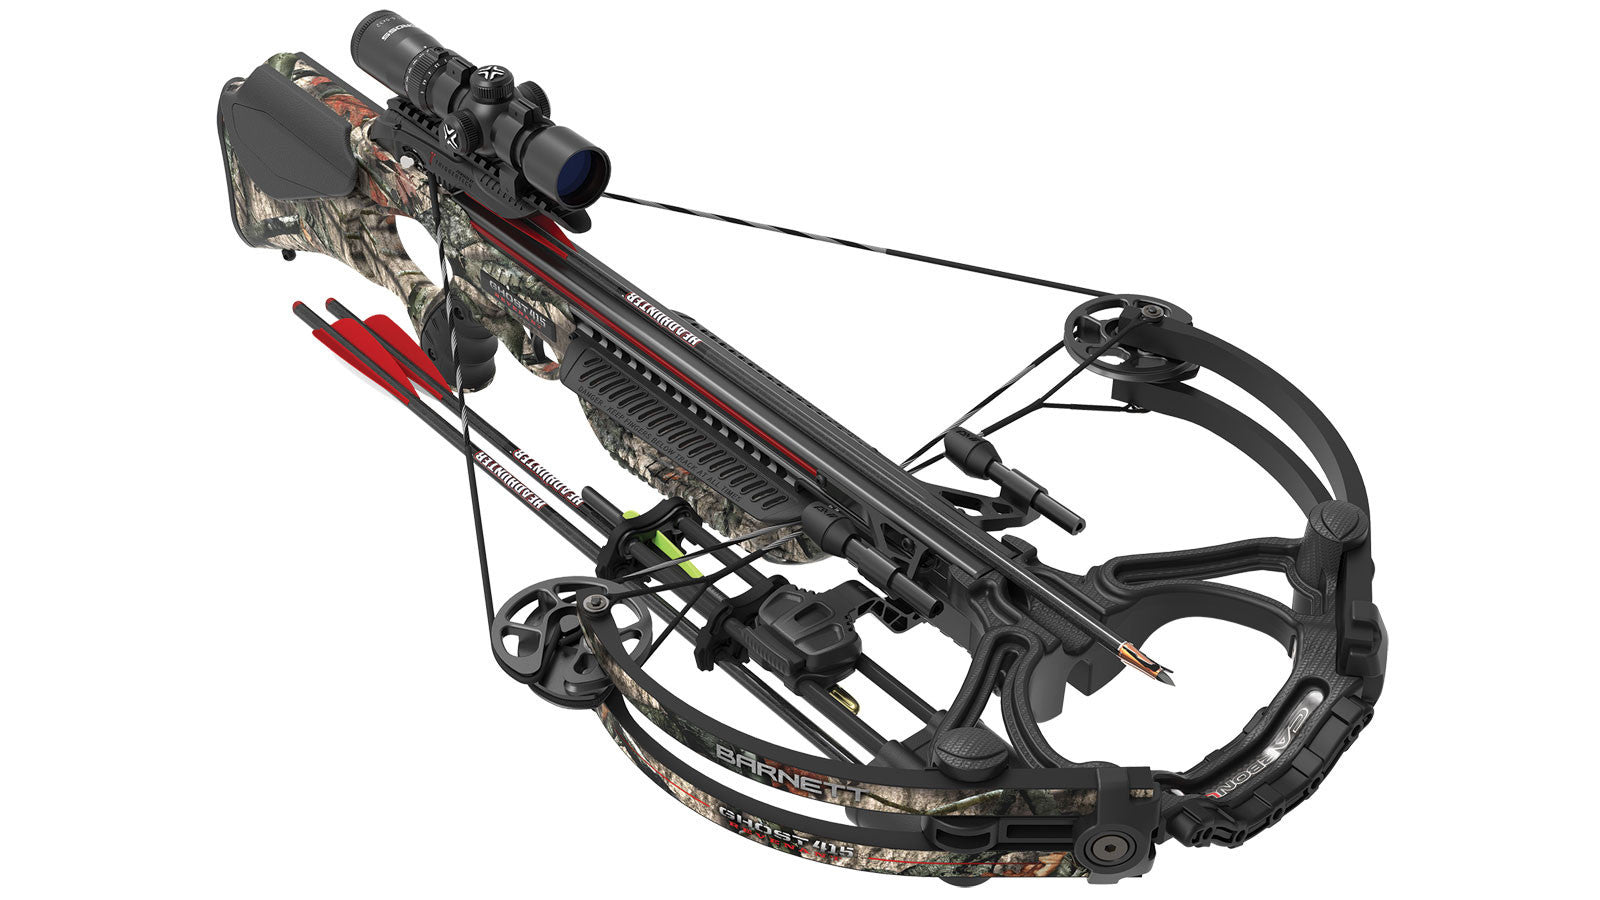 Ghost 415 Revenant - Mossy Oak Treestand with 1.5 x 5 x 32 Illuminated Scope